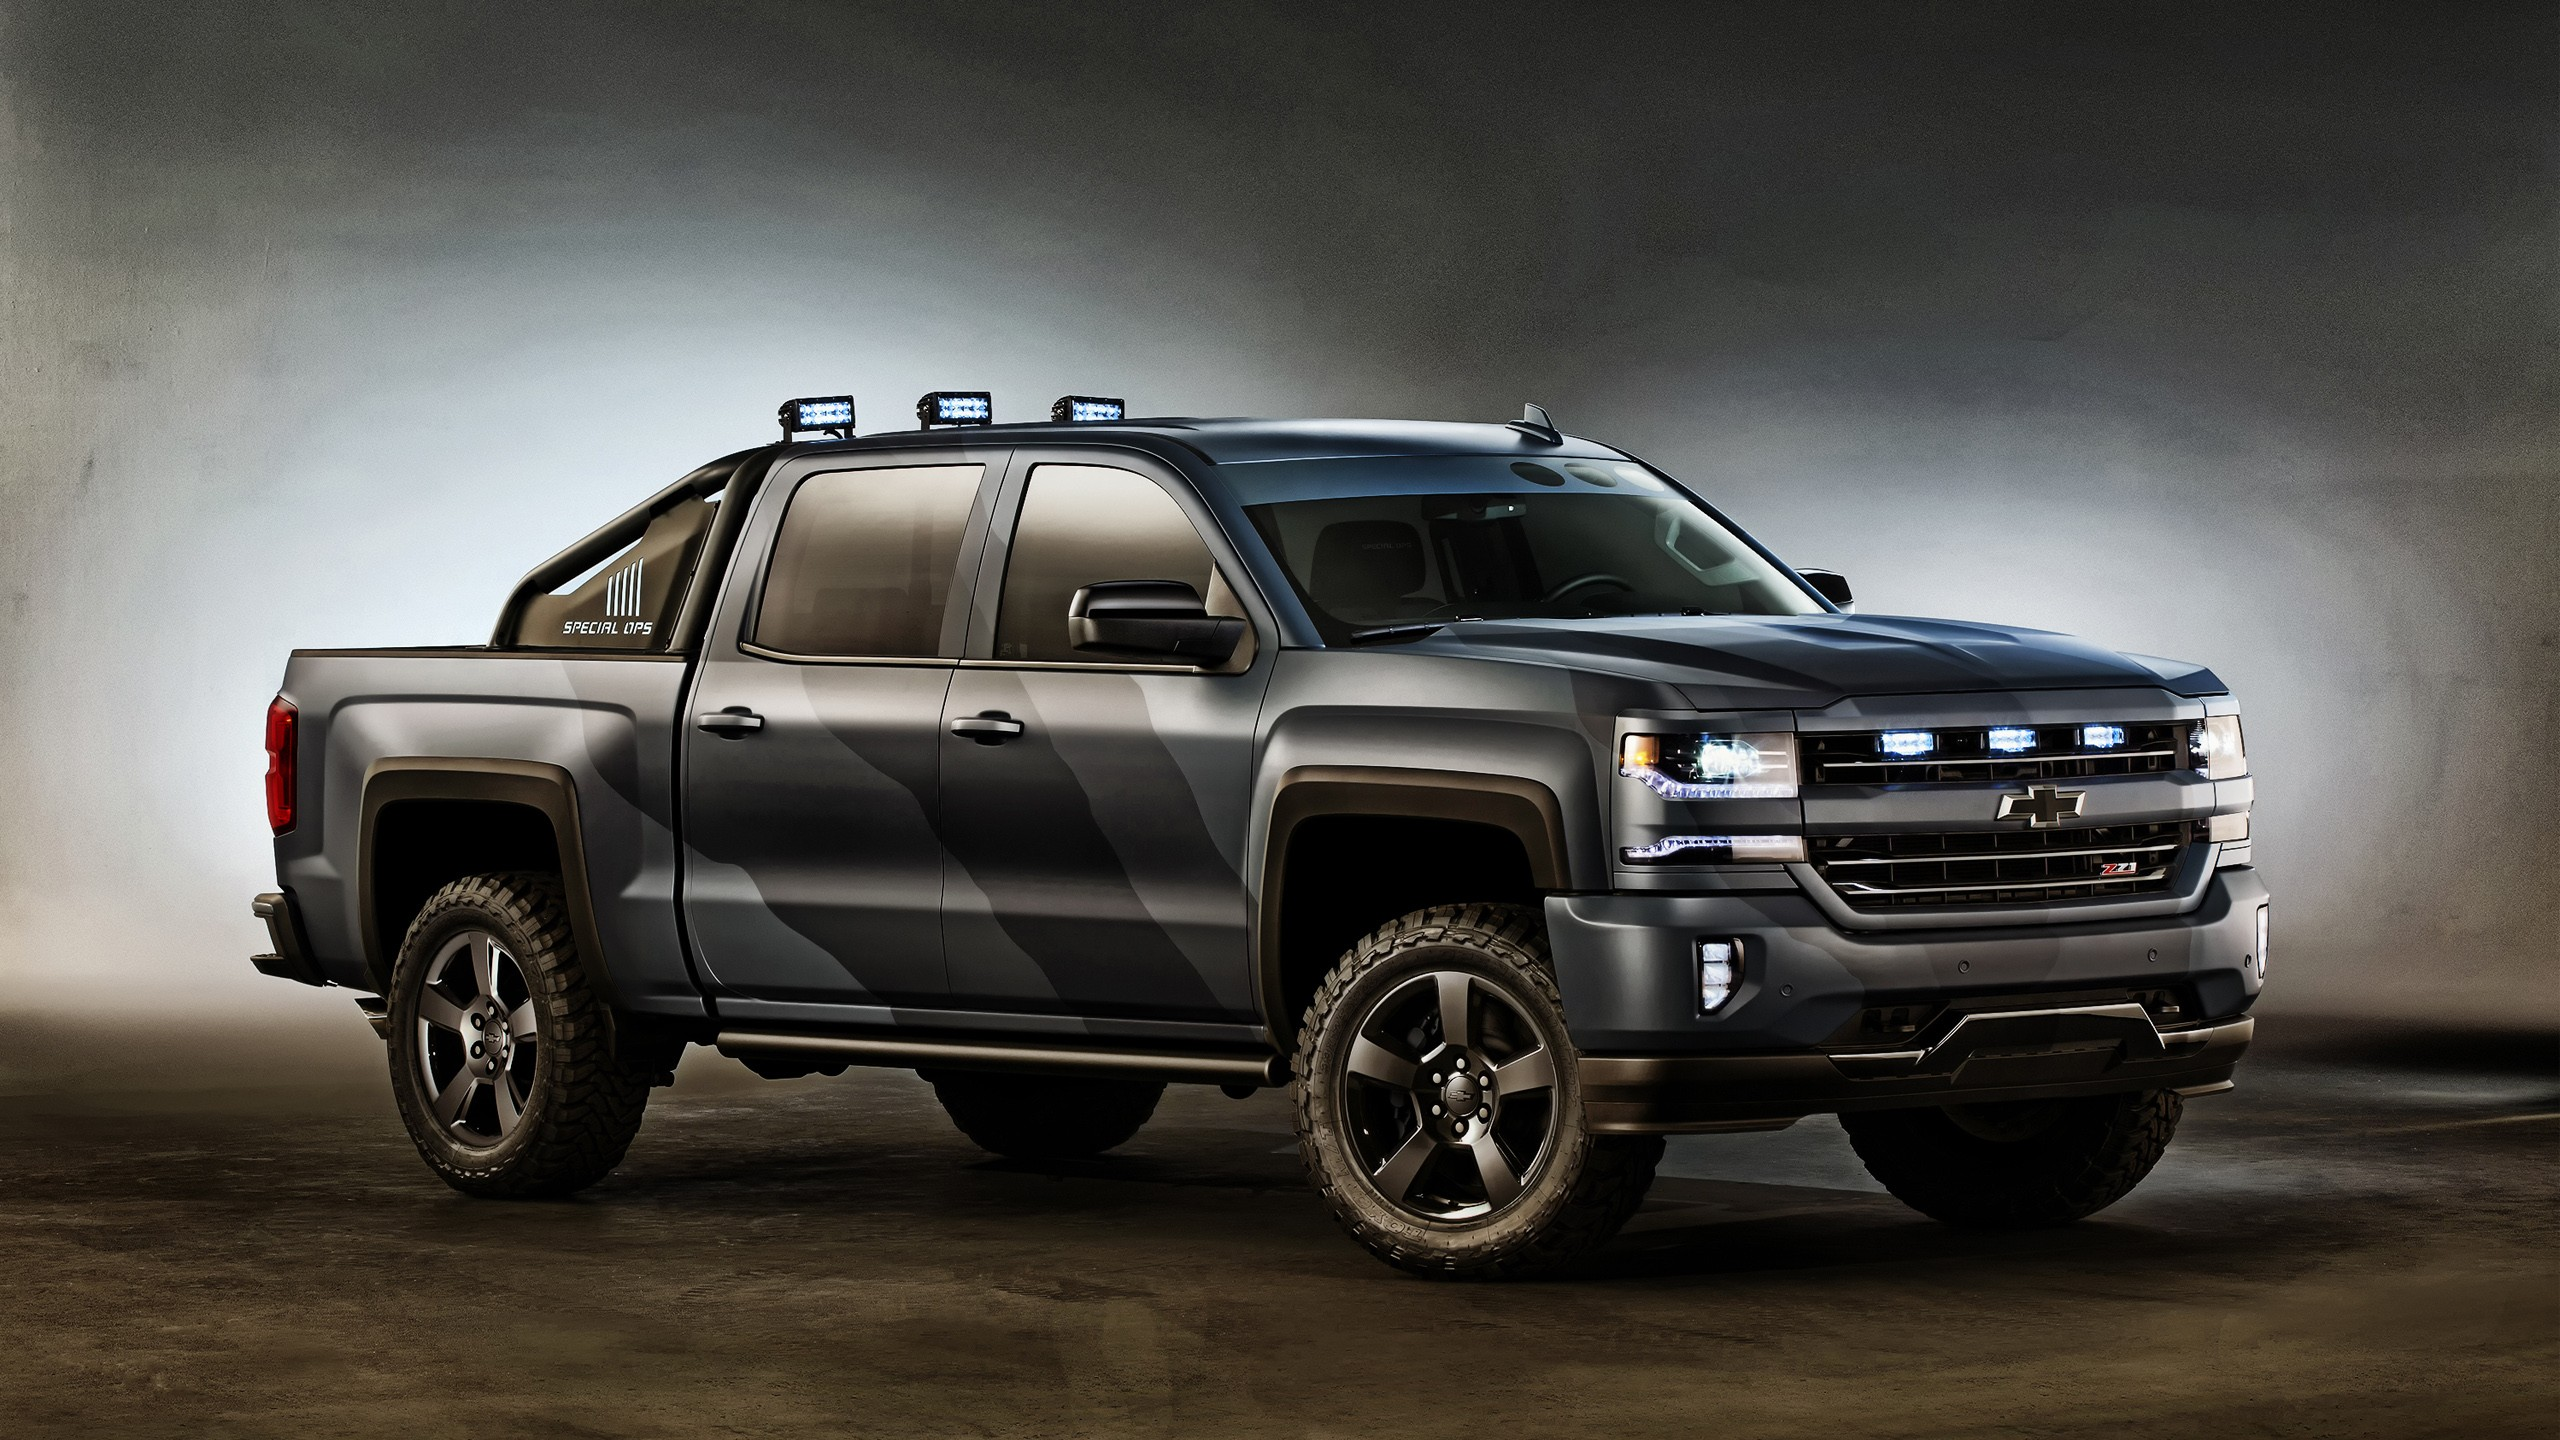 2015 Chevrolet Silverado Concept Wallpaper | HD Car ...